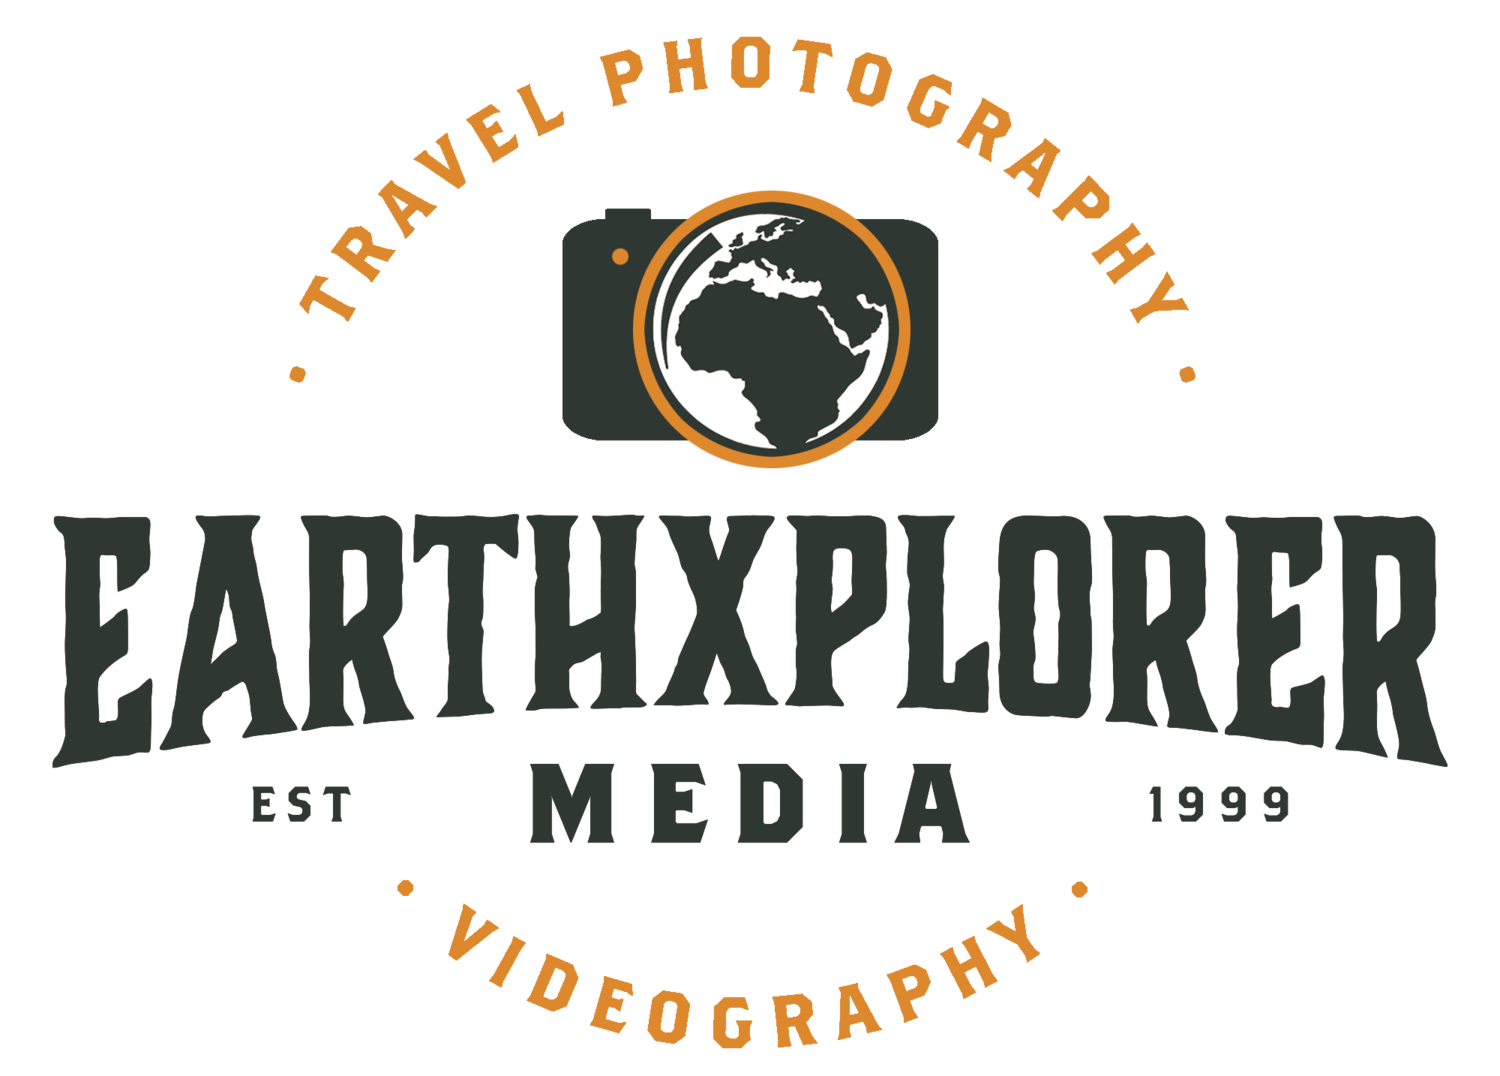 earthXplorer adventure travel video and photography